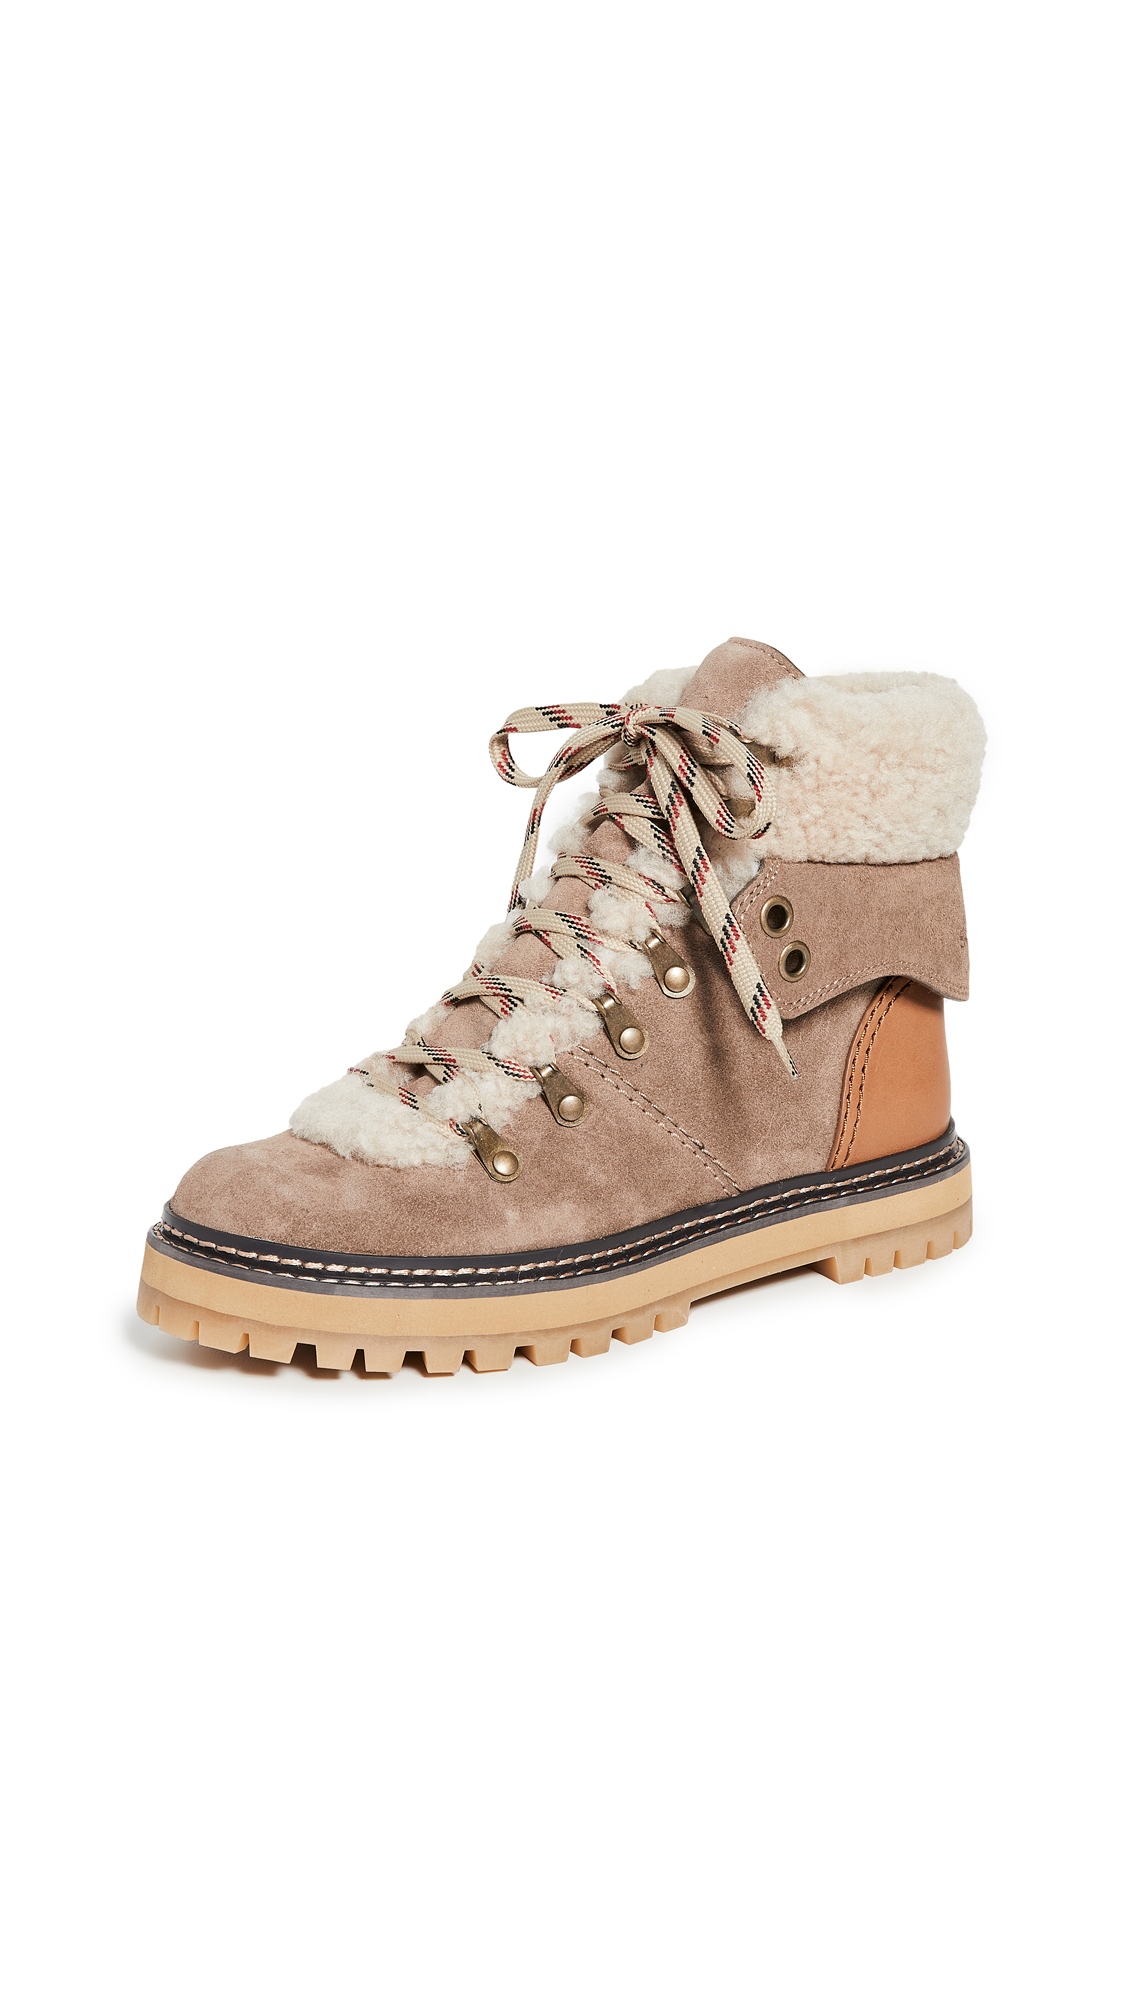 93e302c1cce Eileen Flat Shearling Hiker Boots in Taupe/Natural